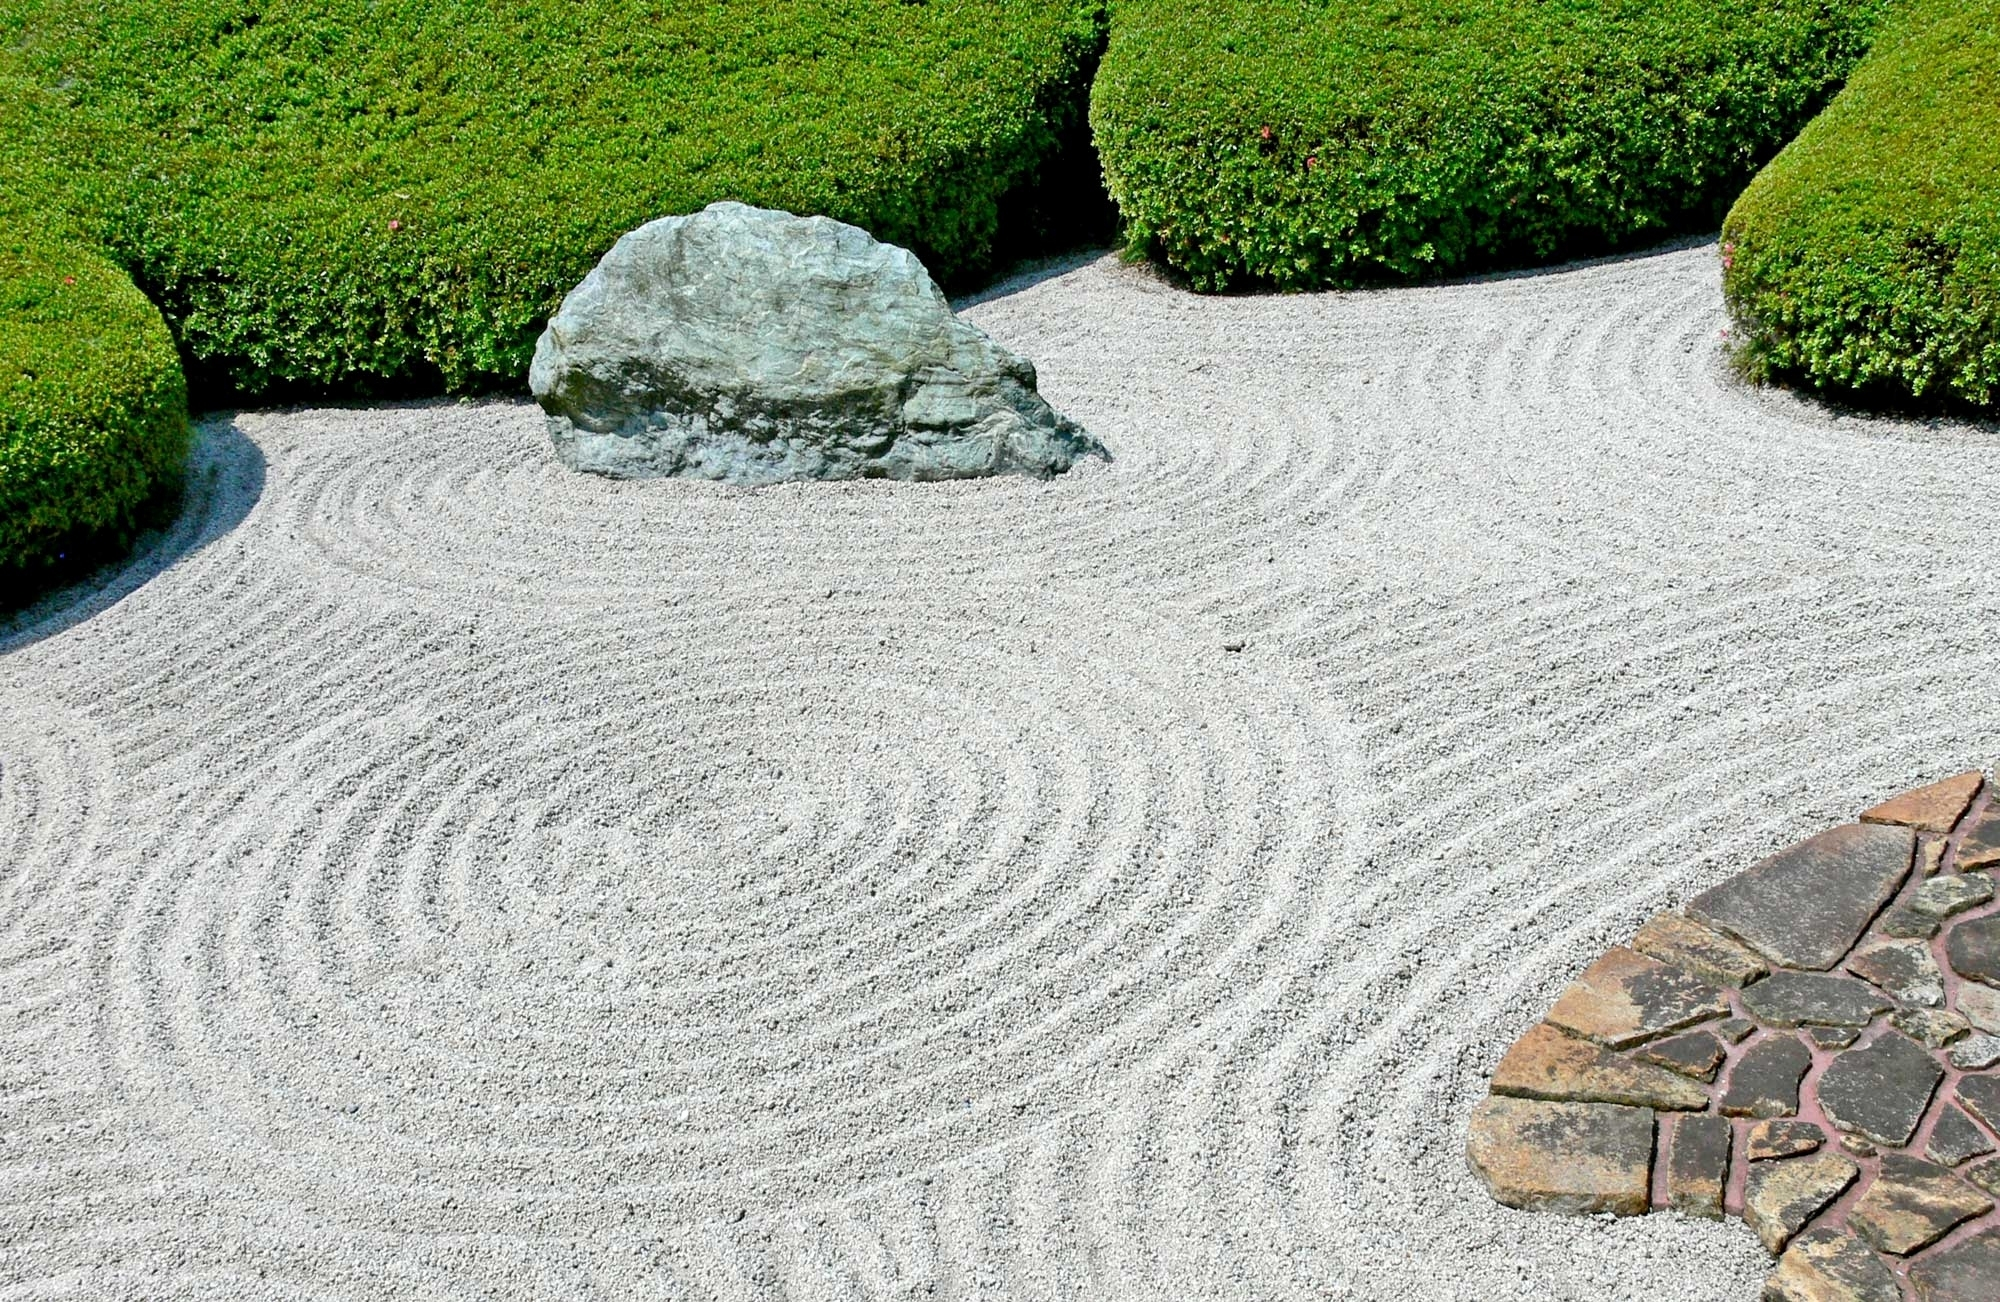 Zen Garden Design Principles - Garden Design Ideas in Zen Garden Design Principles